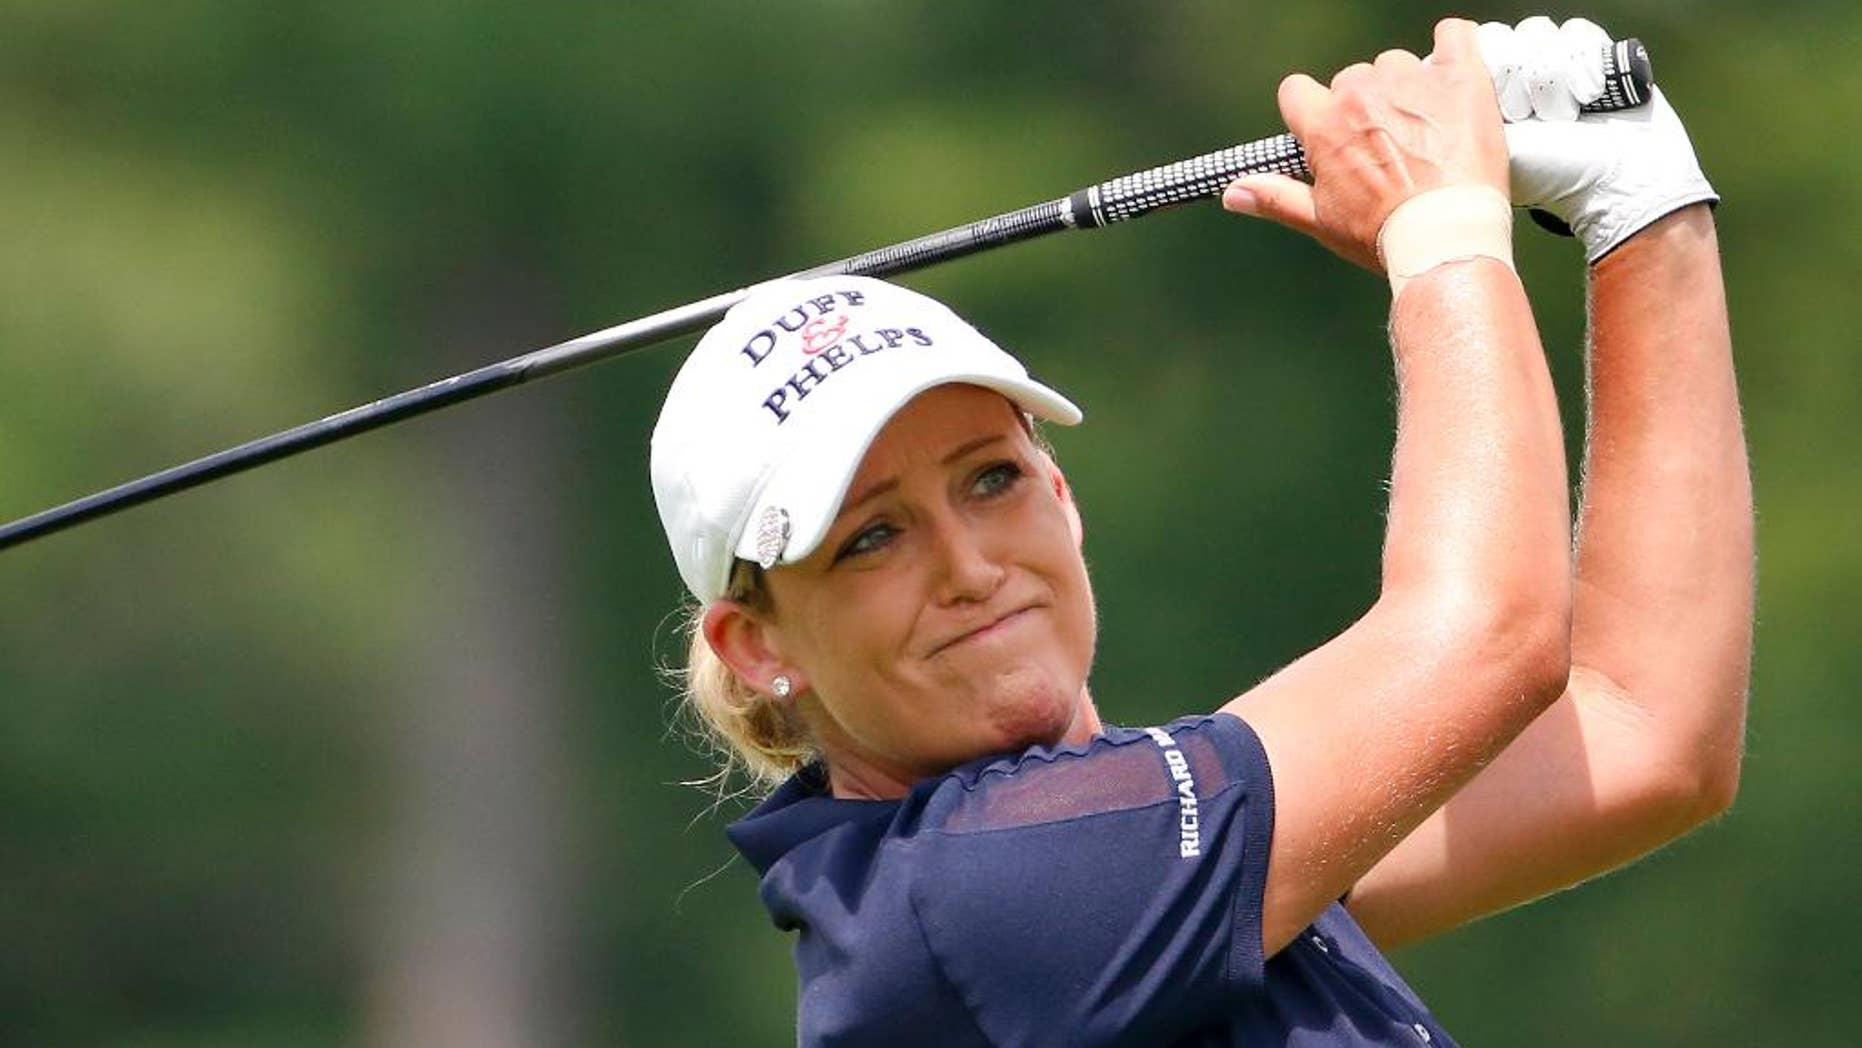 FILE - In this Thursday, July 9, 2015 file photo, Cristie Kerr tees off the 14th hole during the first round of the U.S. Women's Open golf tournament at Lancaster Country Club in Lancaster, Pa. Kerr was a supporter of President-elect Donald Trump in this election cycle, and even considers her occasional golfing buddy a friend, Tuesday, Nov. 15, 2016. (AP Photo/Gene J. Puskar, File)